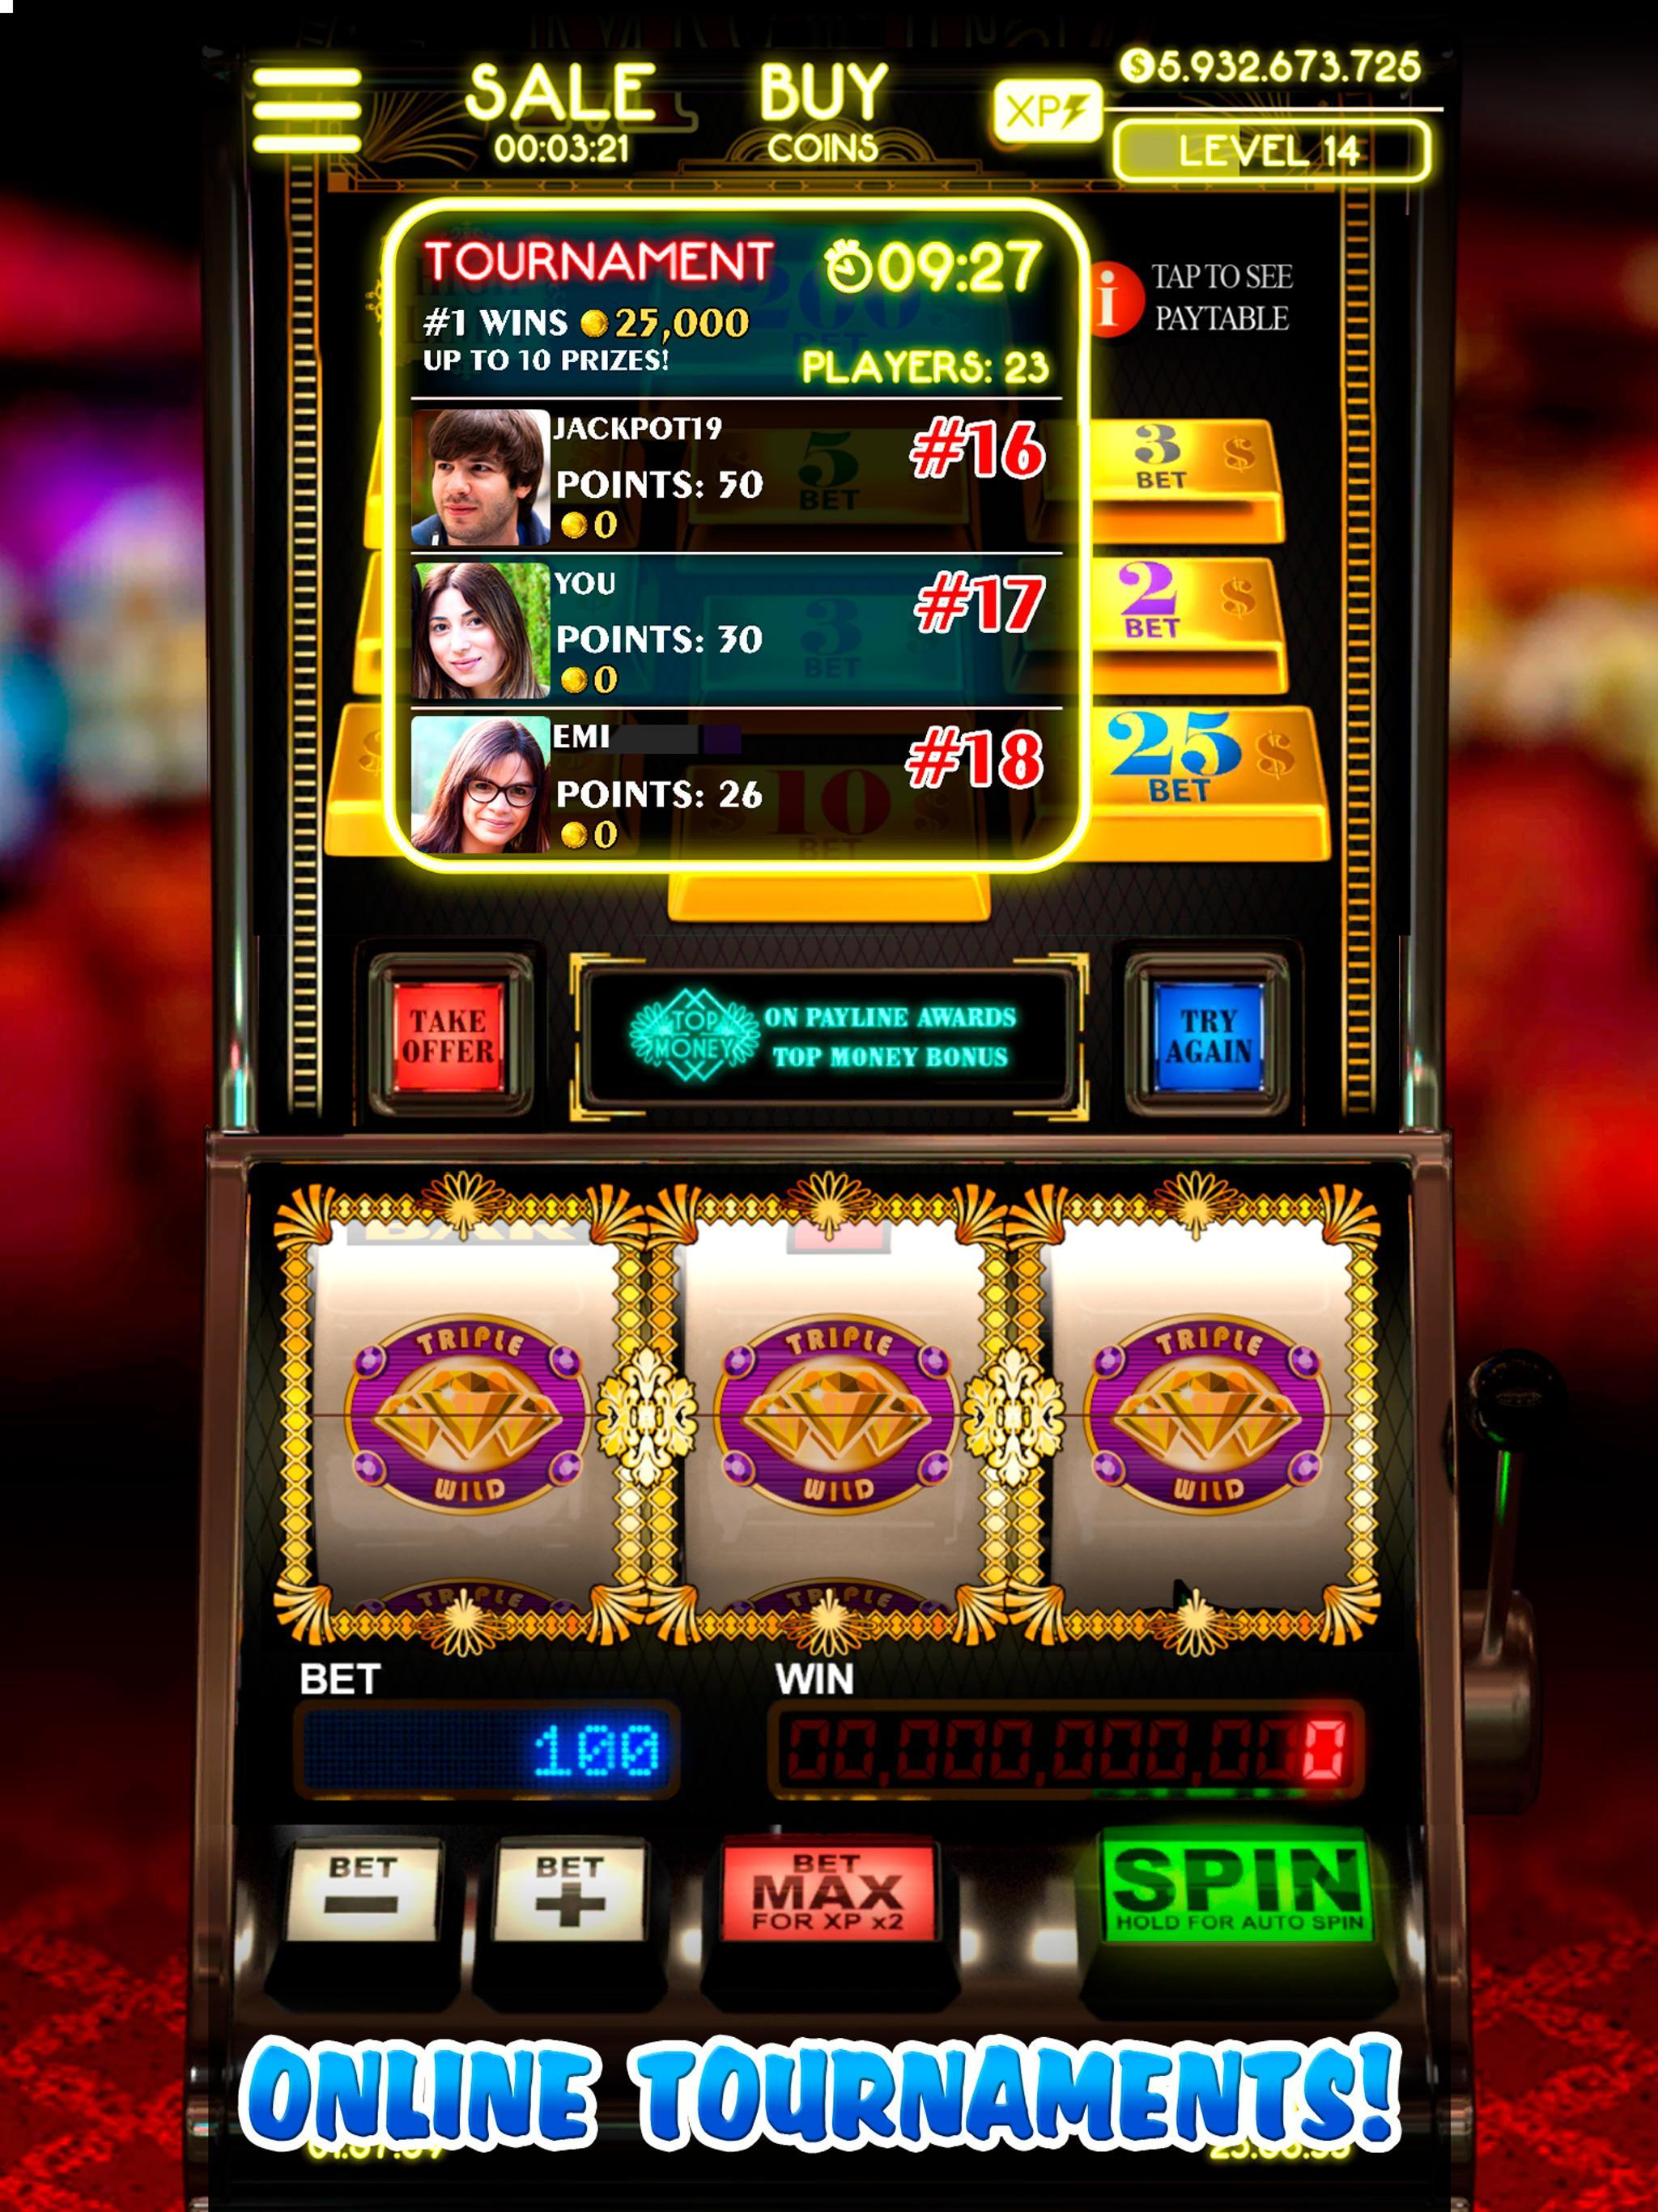 Free Slots Top Money Slot For Android Apk Download